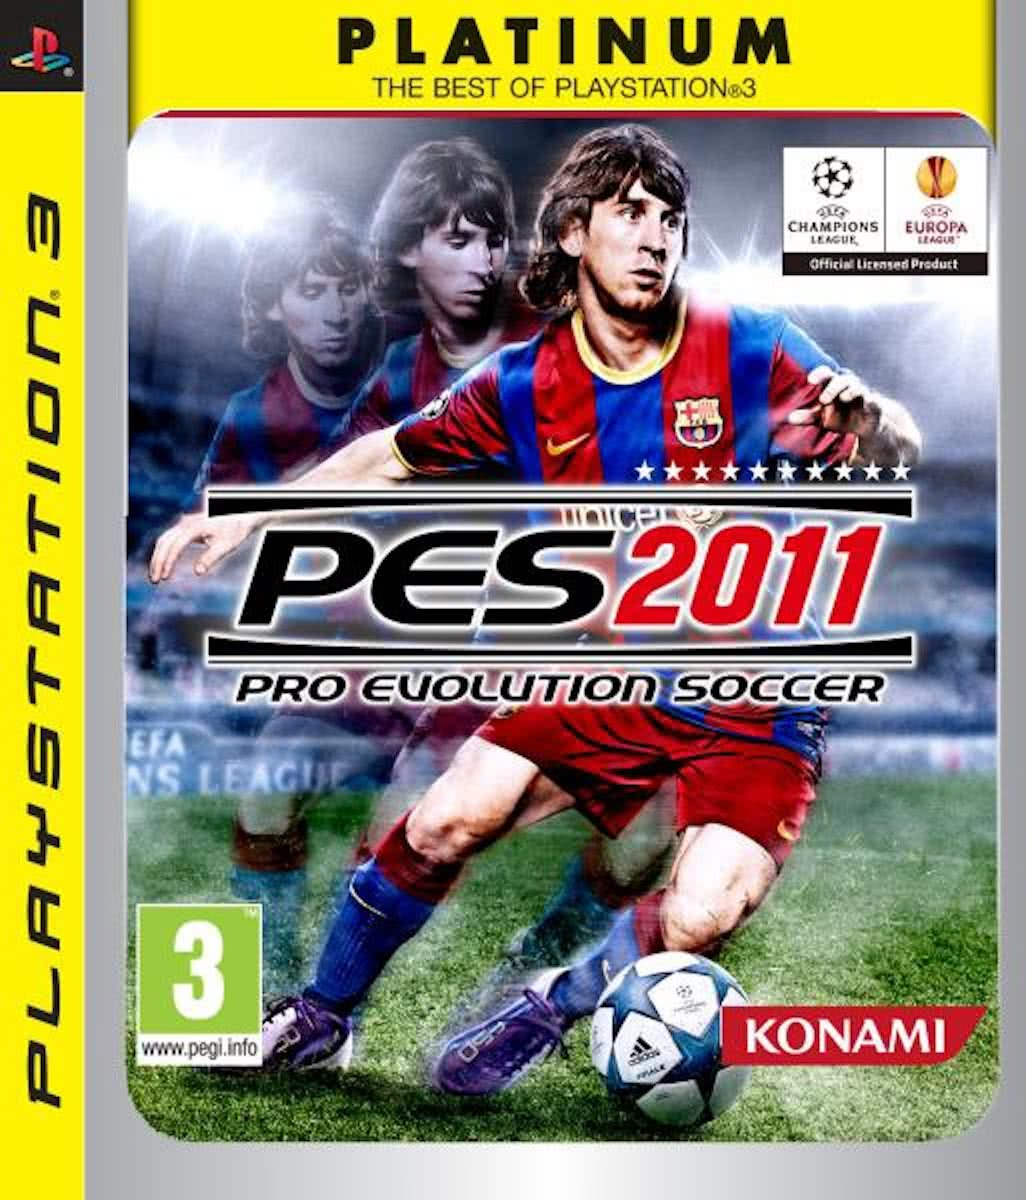 Pro Evolution Soccer 2011 Platinum /PS3